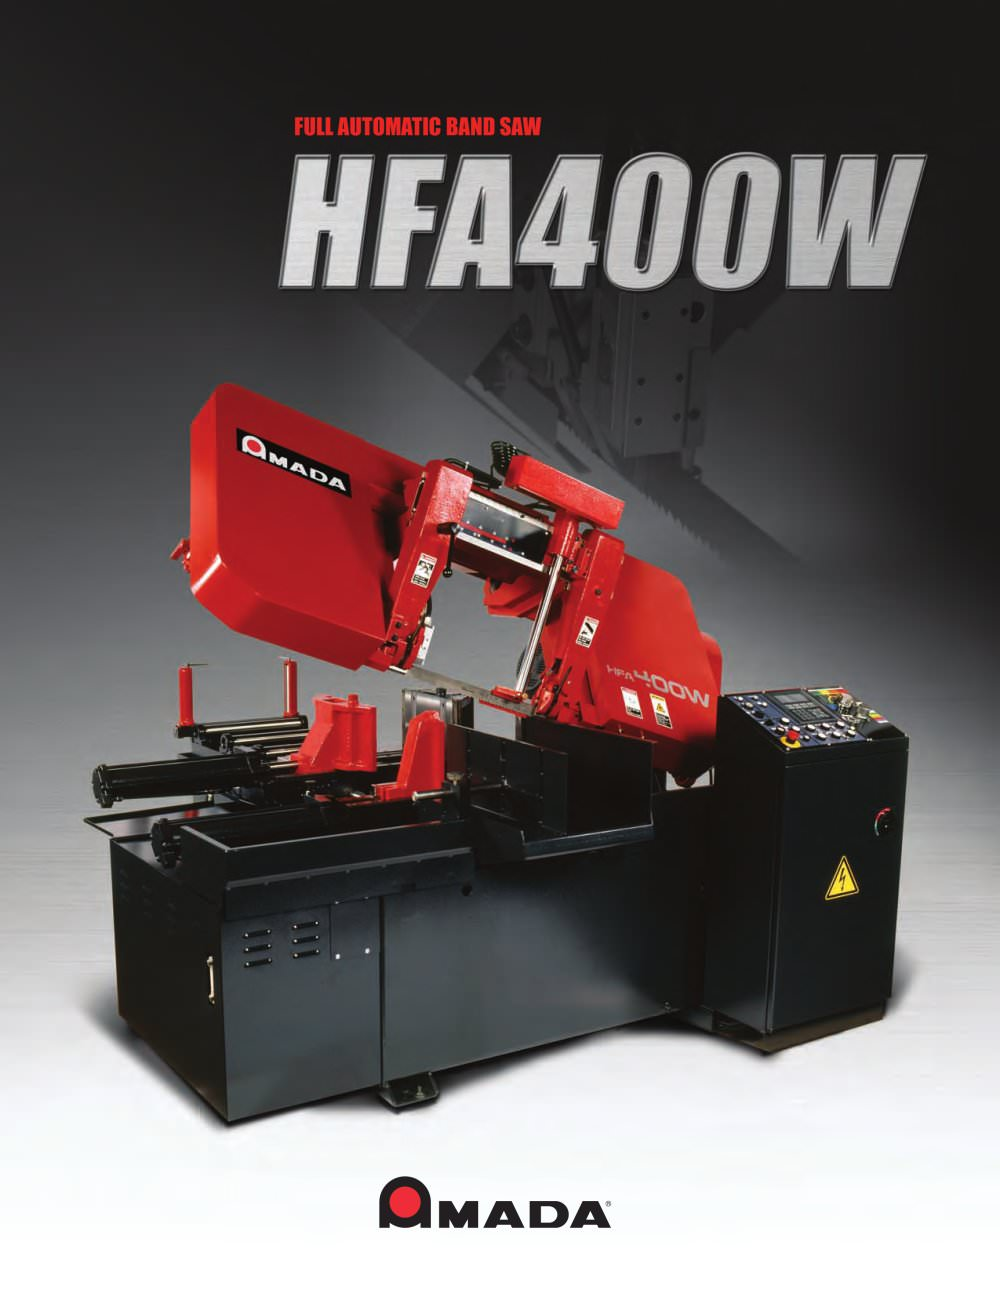 HFA400W - 1 / 2 Pages